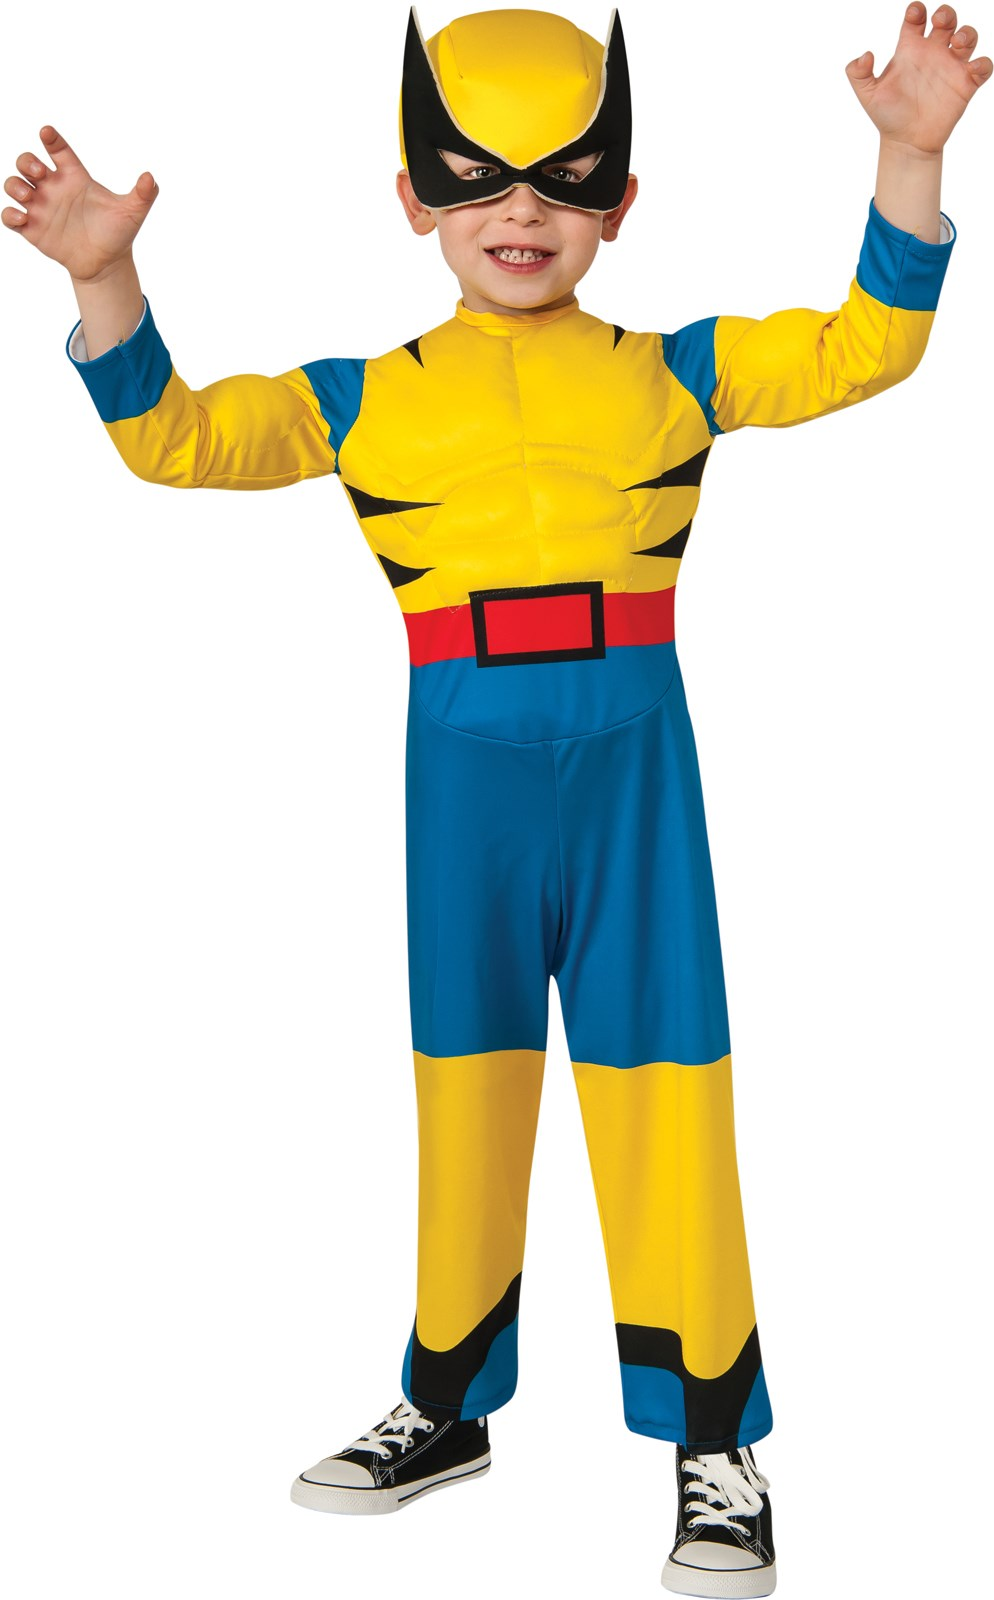 Marvel Wolverine Toddler Costume Toddler (2-4)